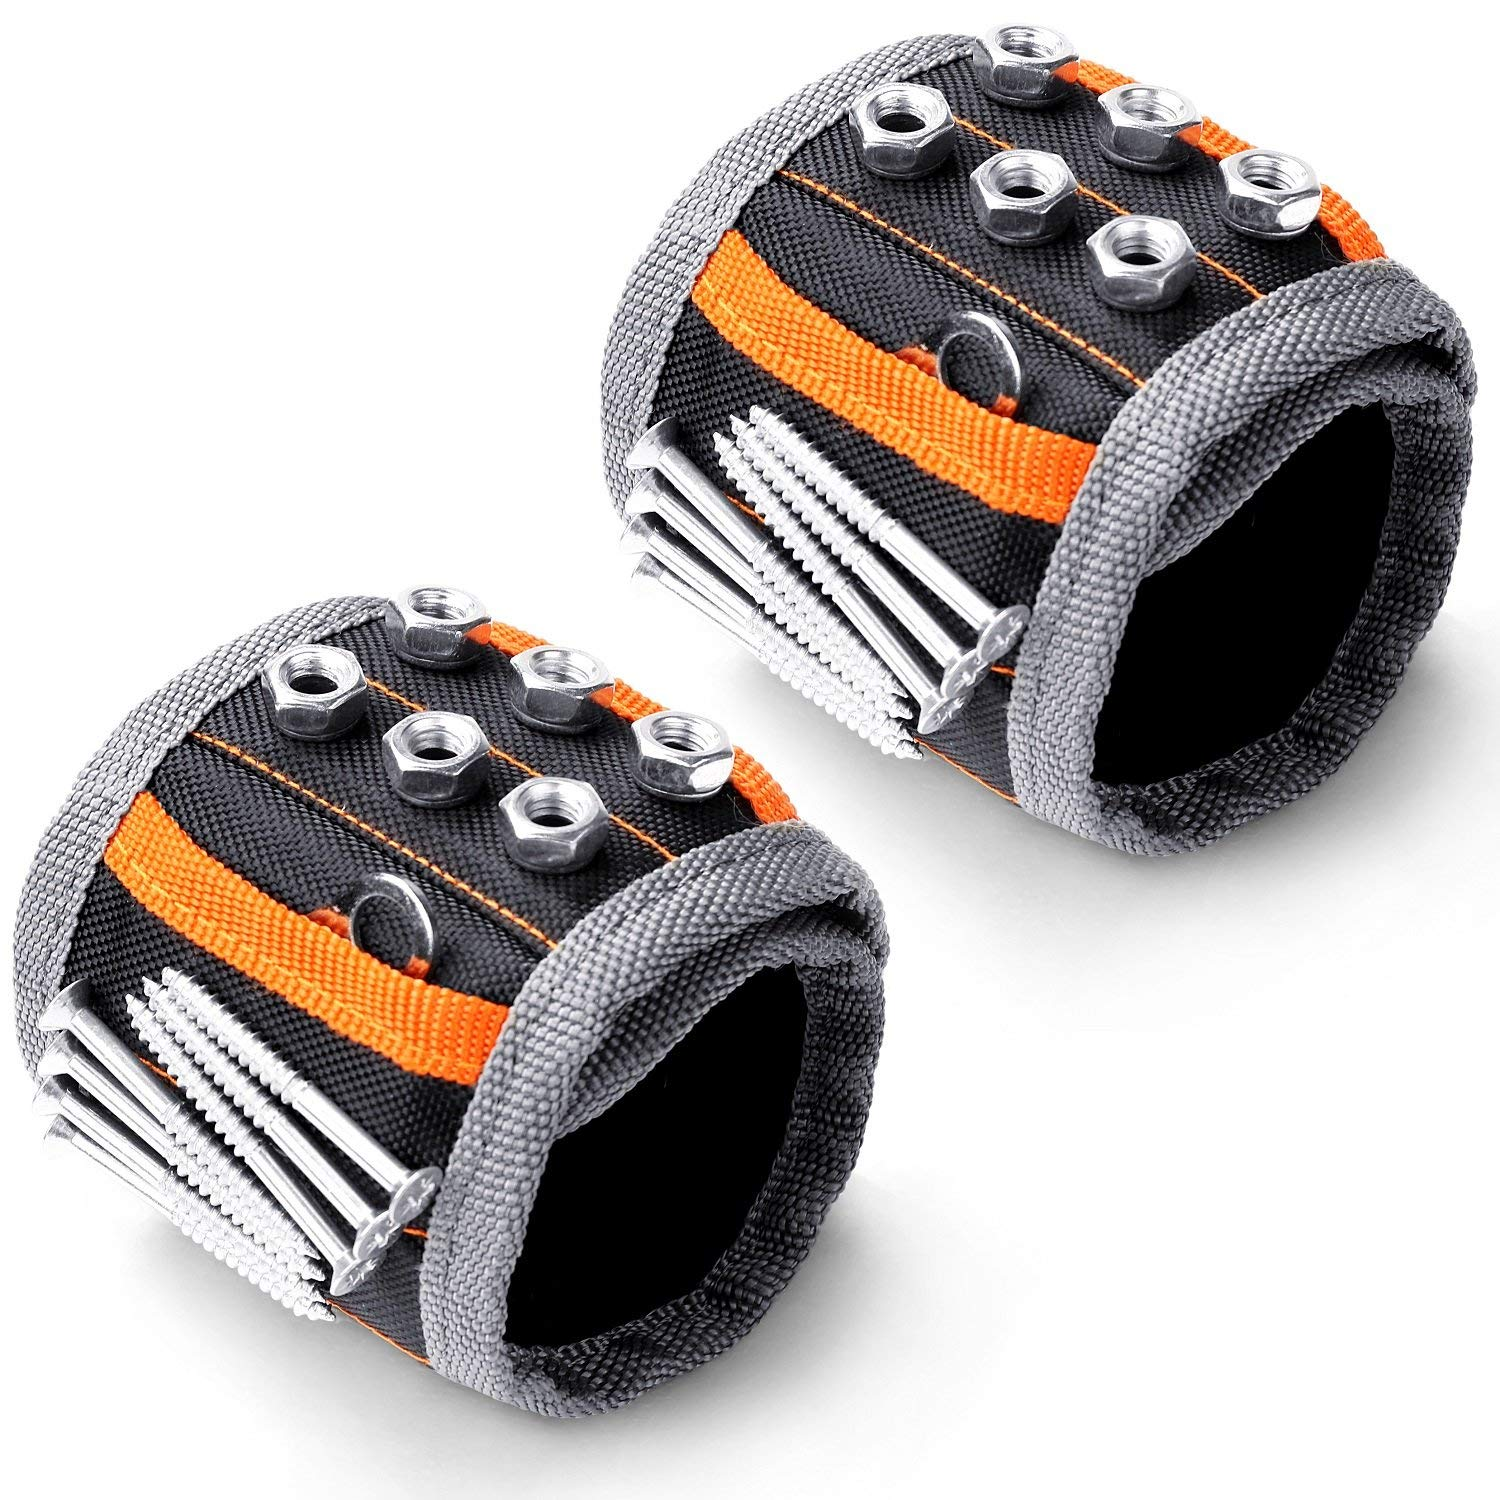 HORUSDY 2PC Magnetic Wristband with Strong Magnets for Holding Screws Nails Drilling Bits of The Best Valentine's Day Tools for Men New 2pc